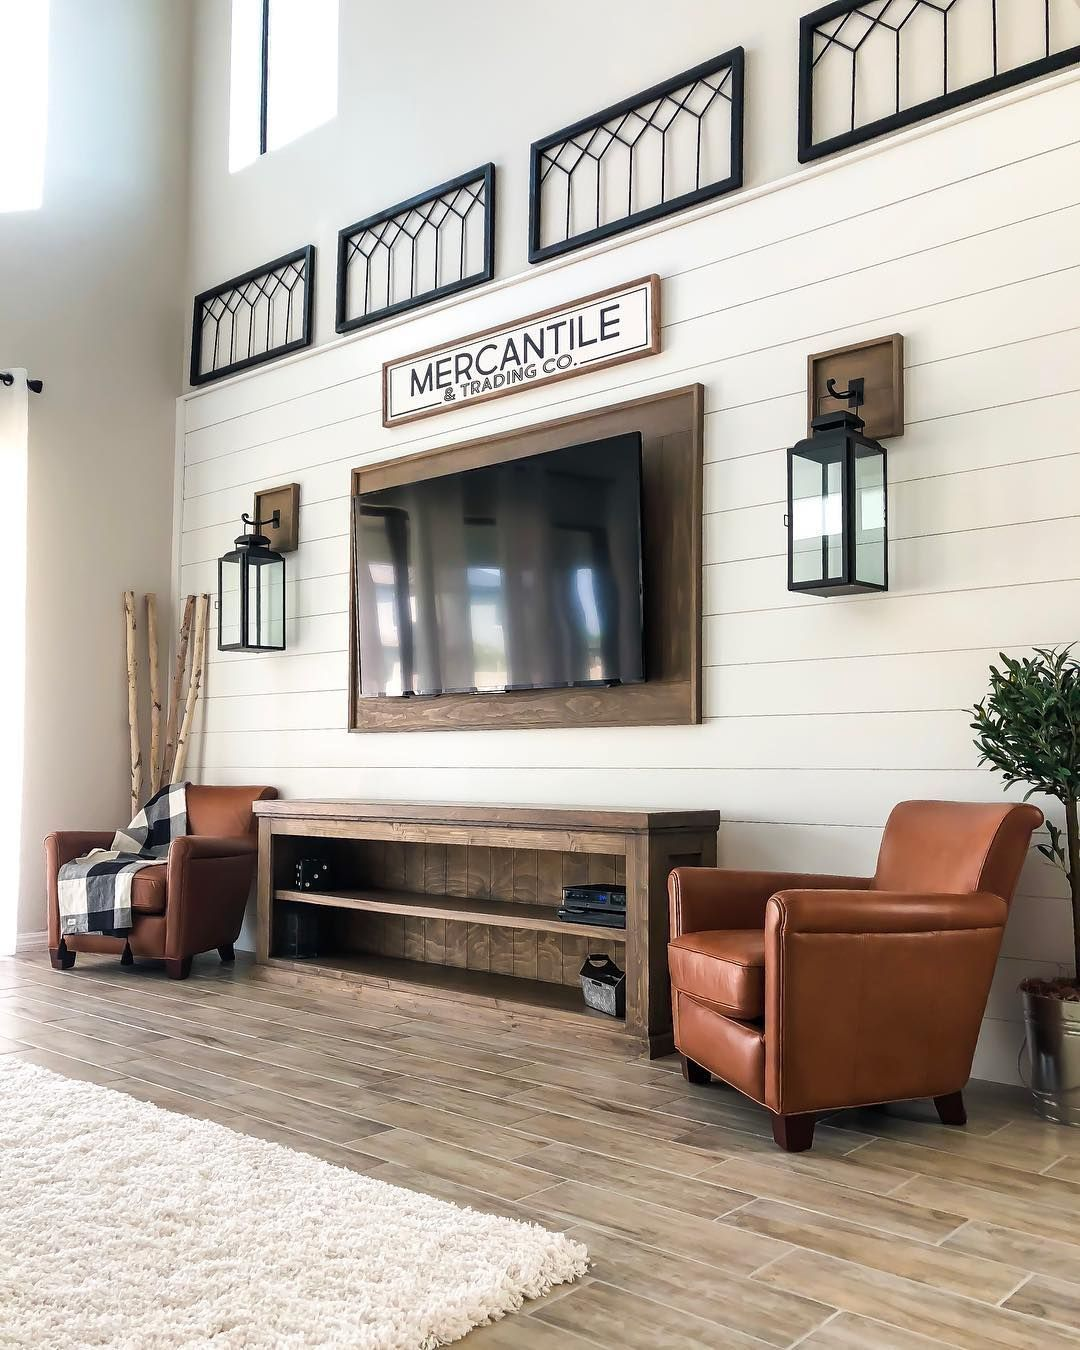 Michael And Keleigh On Instagram It S Hump Day And Only Two More Days Till The Week In 2020 Accent Walls In Living Room Shiplap Living Room Farm House Living Room #two #tv #living #room